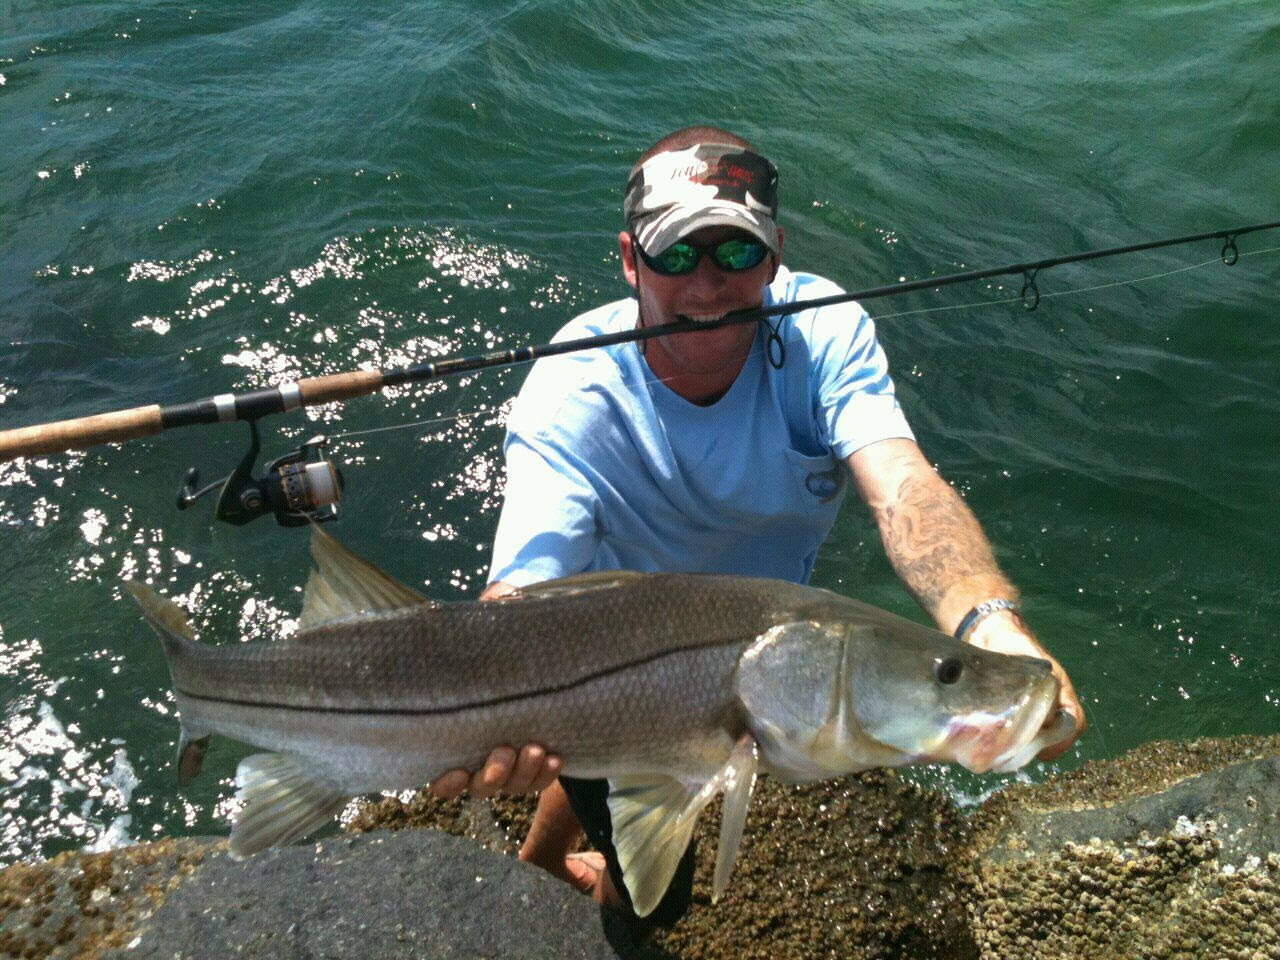 On foot angler from todd eric juno bait juno beach for Snook fishing lures